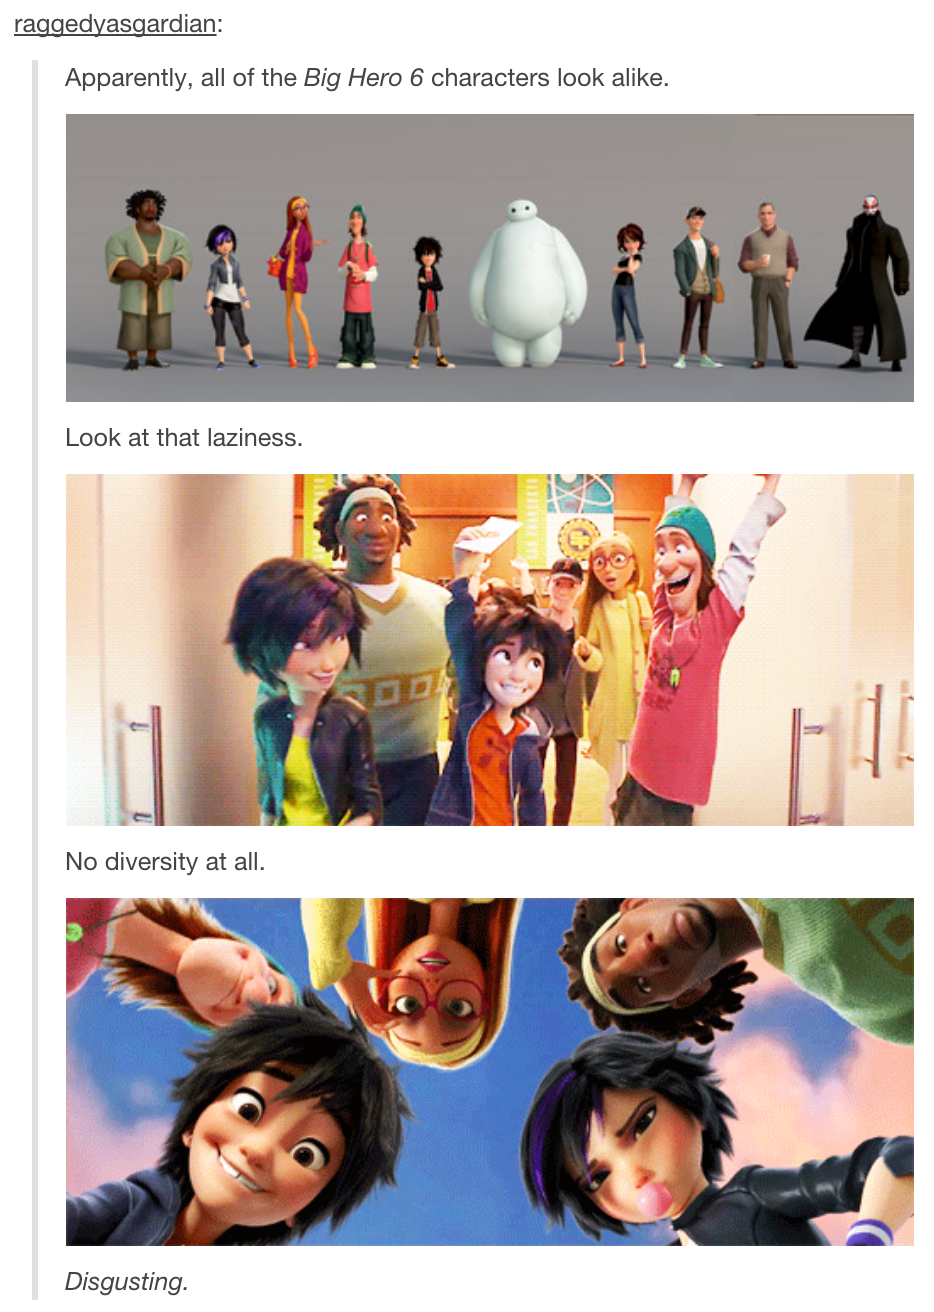 Absolutely Disgusting Haha Gosh Some People Just Don T Know What They Re Talking About Big Hero Big Hero 6 Disney Marvel